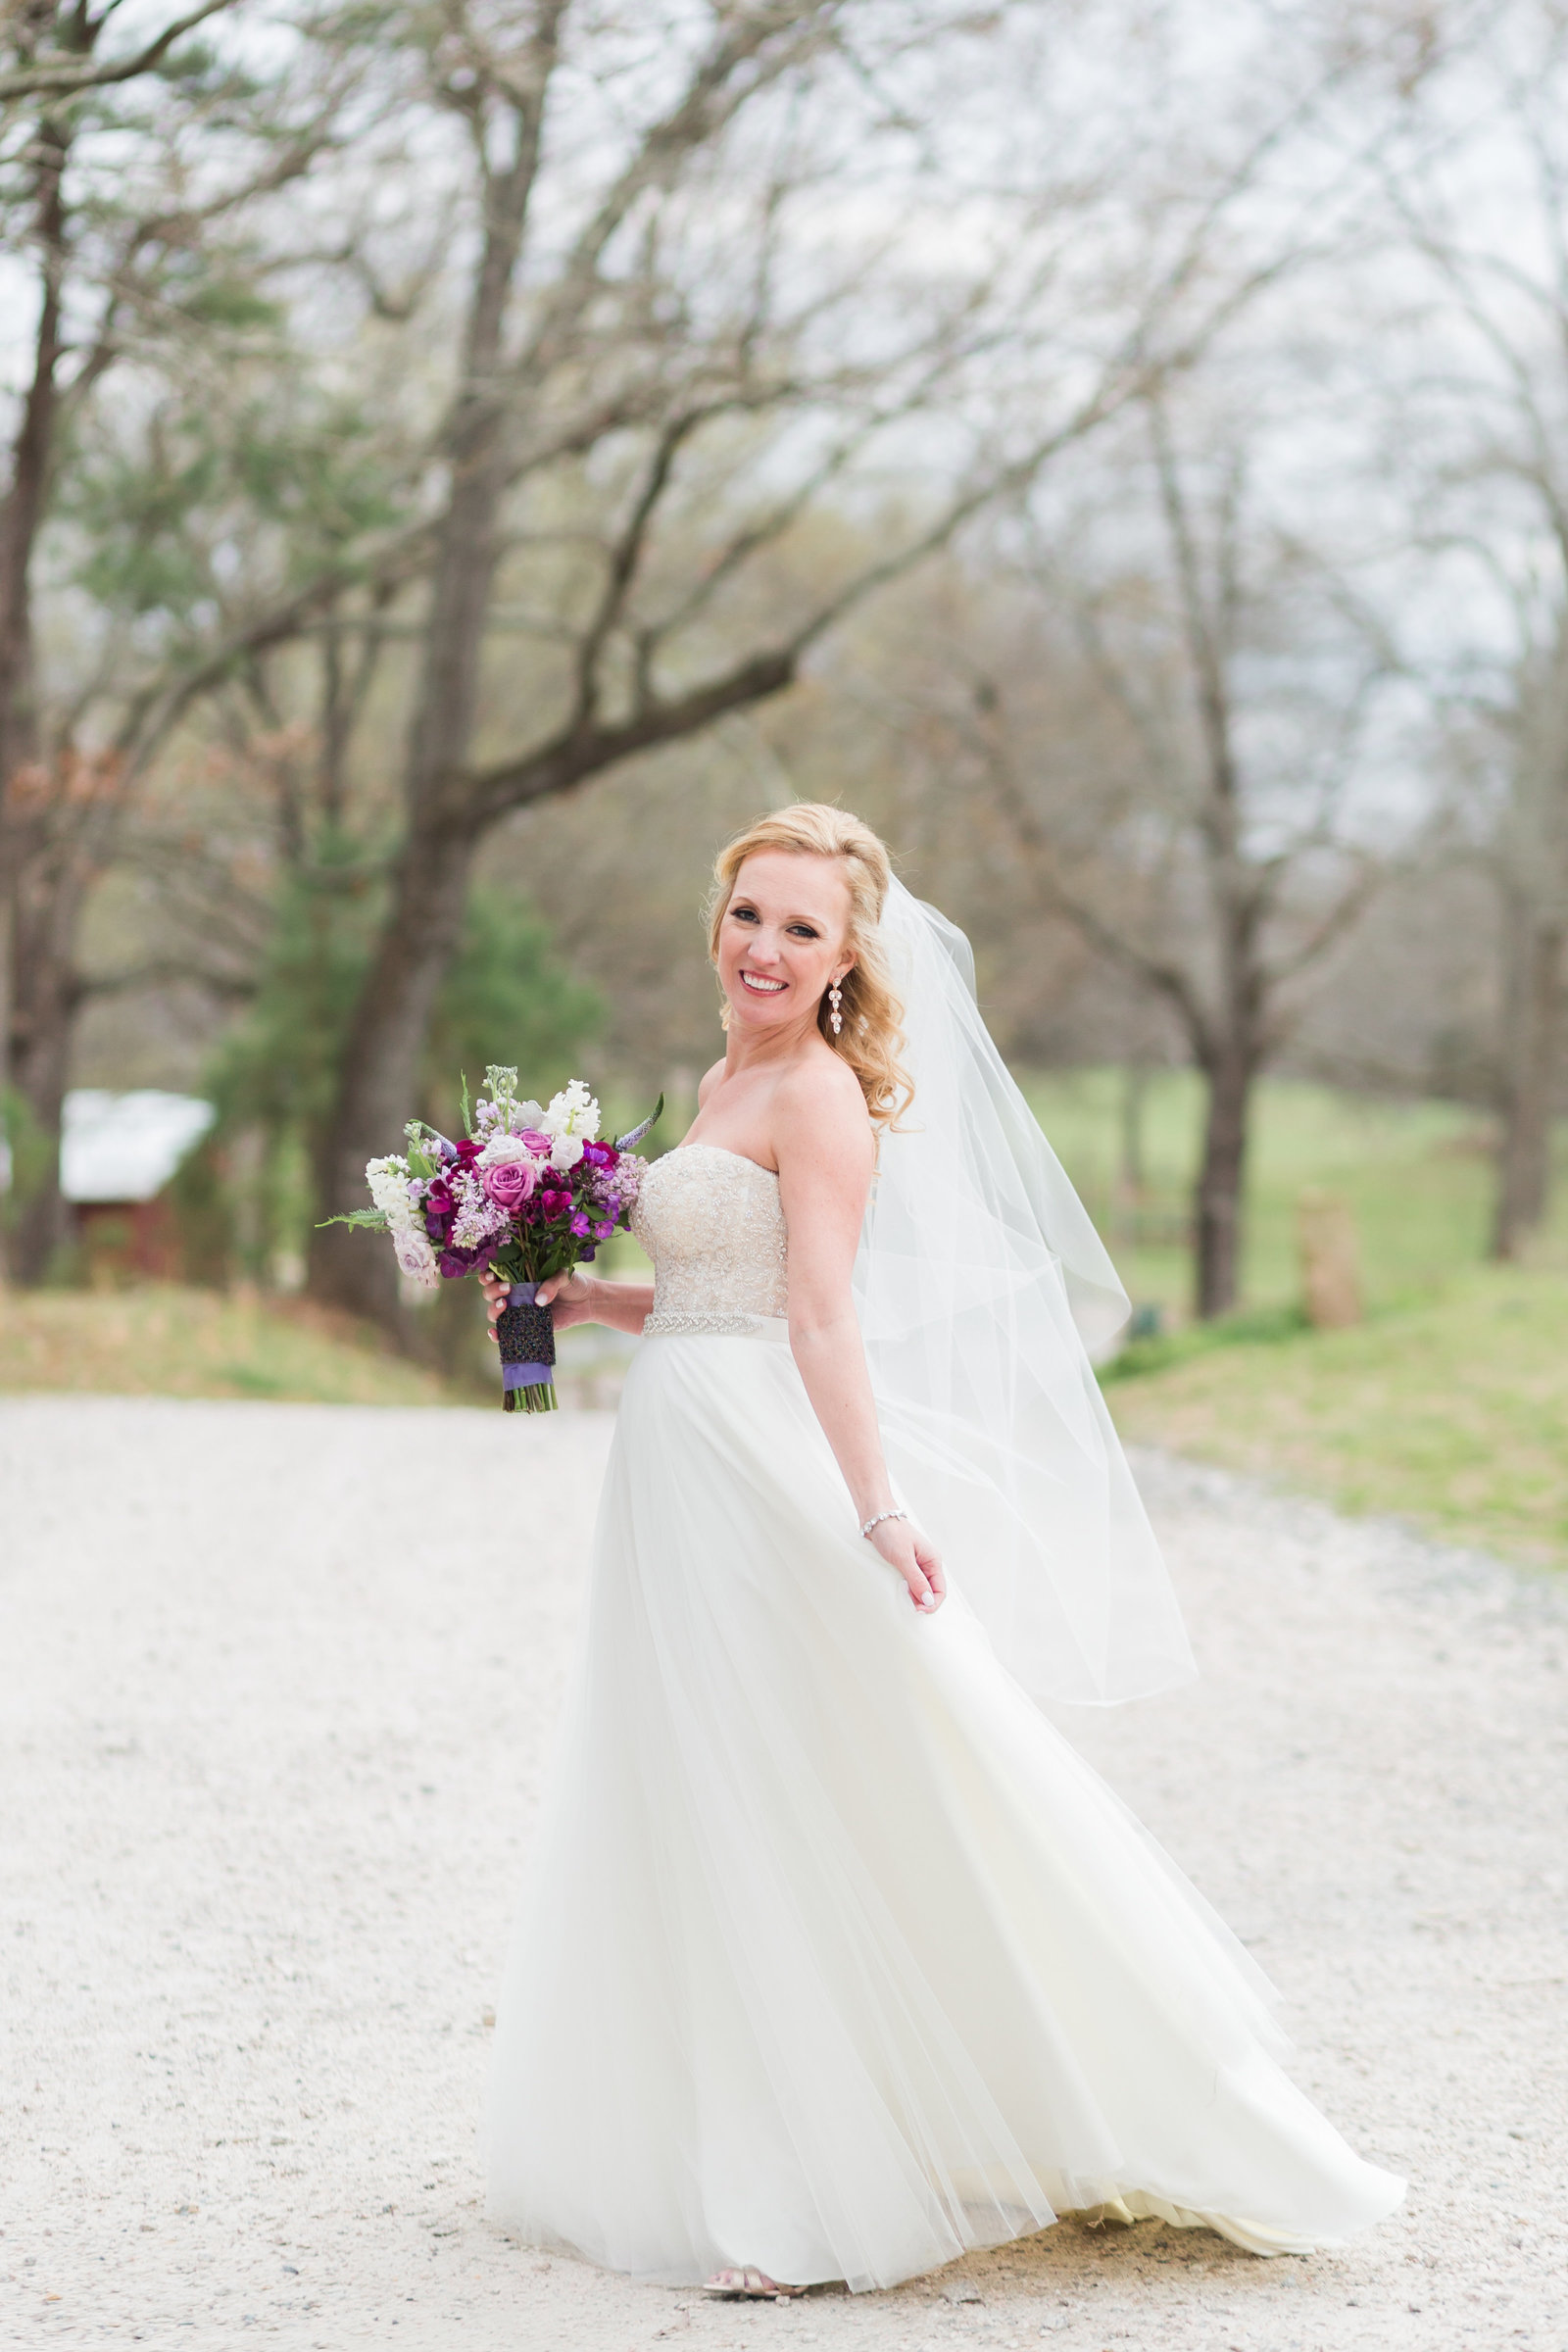 Dan and Sarah Married-Favorites-Samantha Laffoon Photography-27